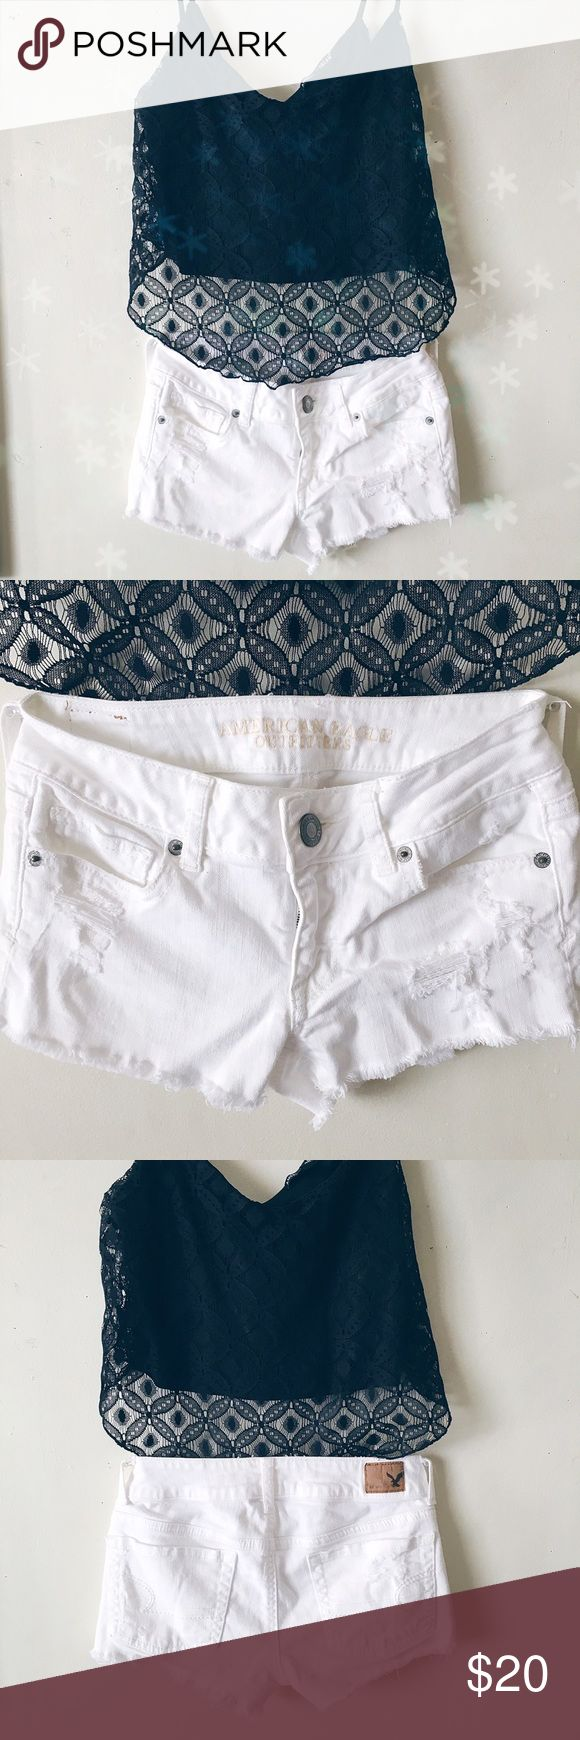 ❕SALE❕American Eagle Outfitters jean shorts White & distressed! Perfect summer shorts☀️make an offer!✌️no trades thank you☺️ American Eagle Outfitters Shorts Jean Shorts